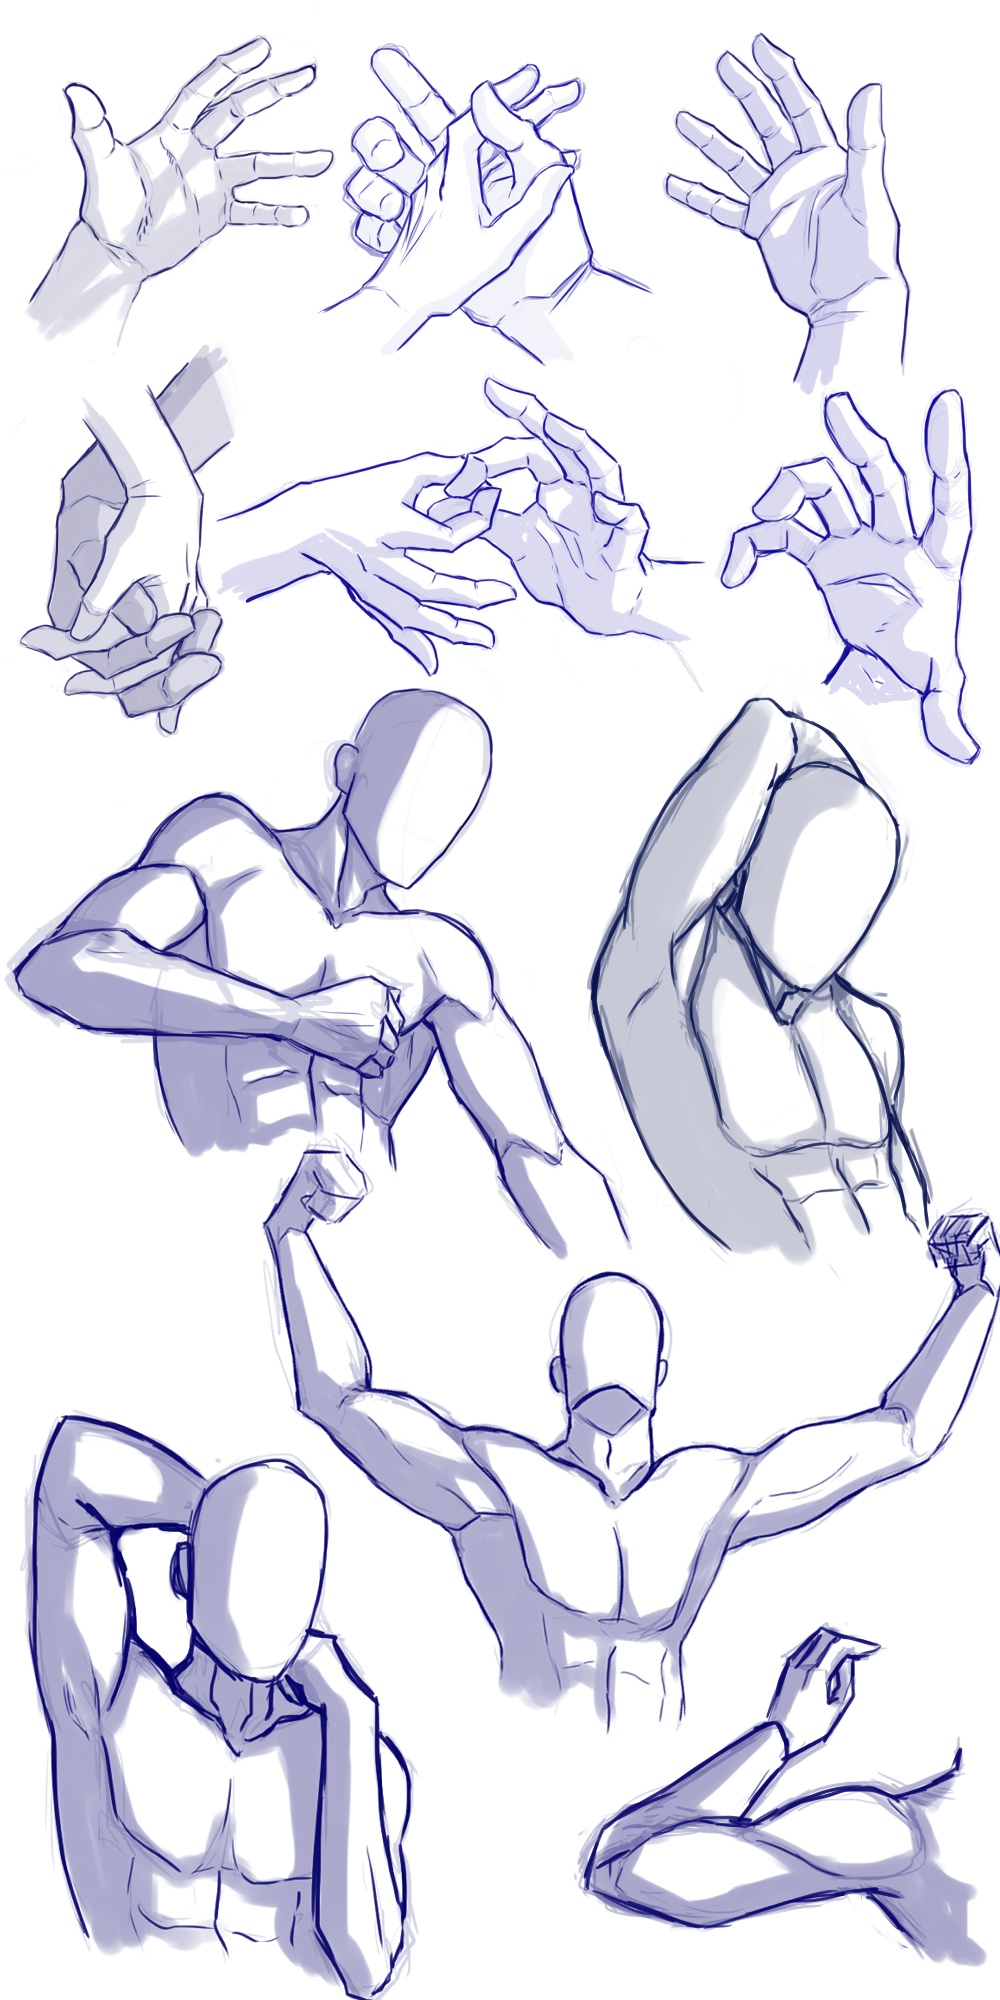 Hands and arms practice by Mrakobulka